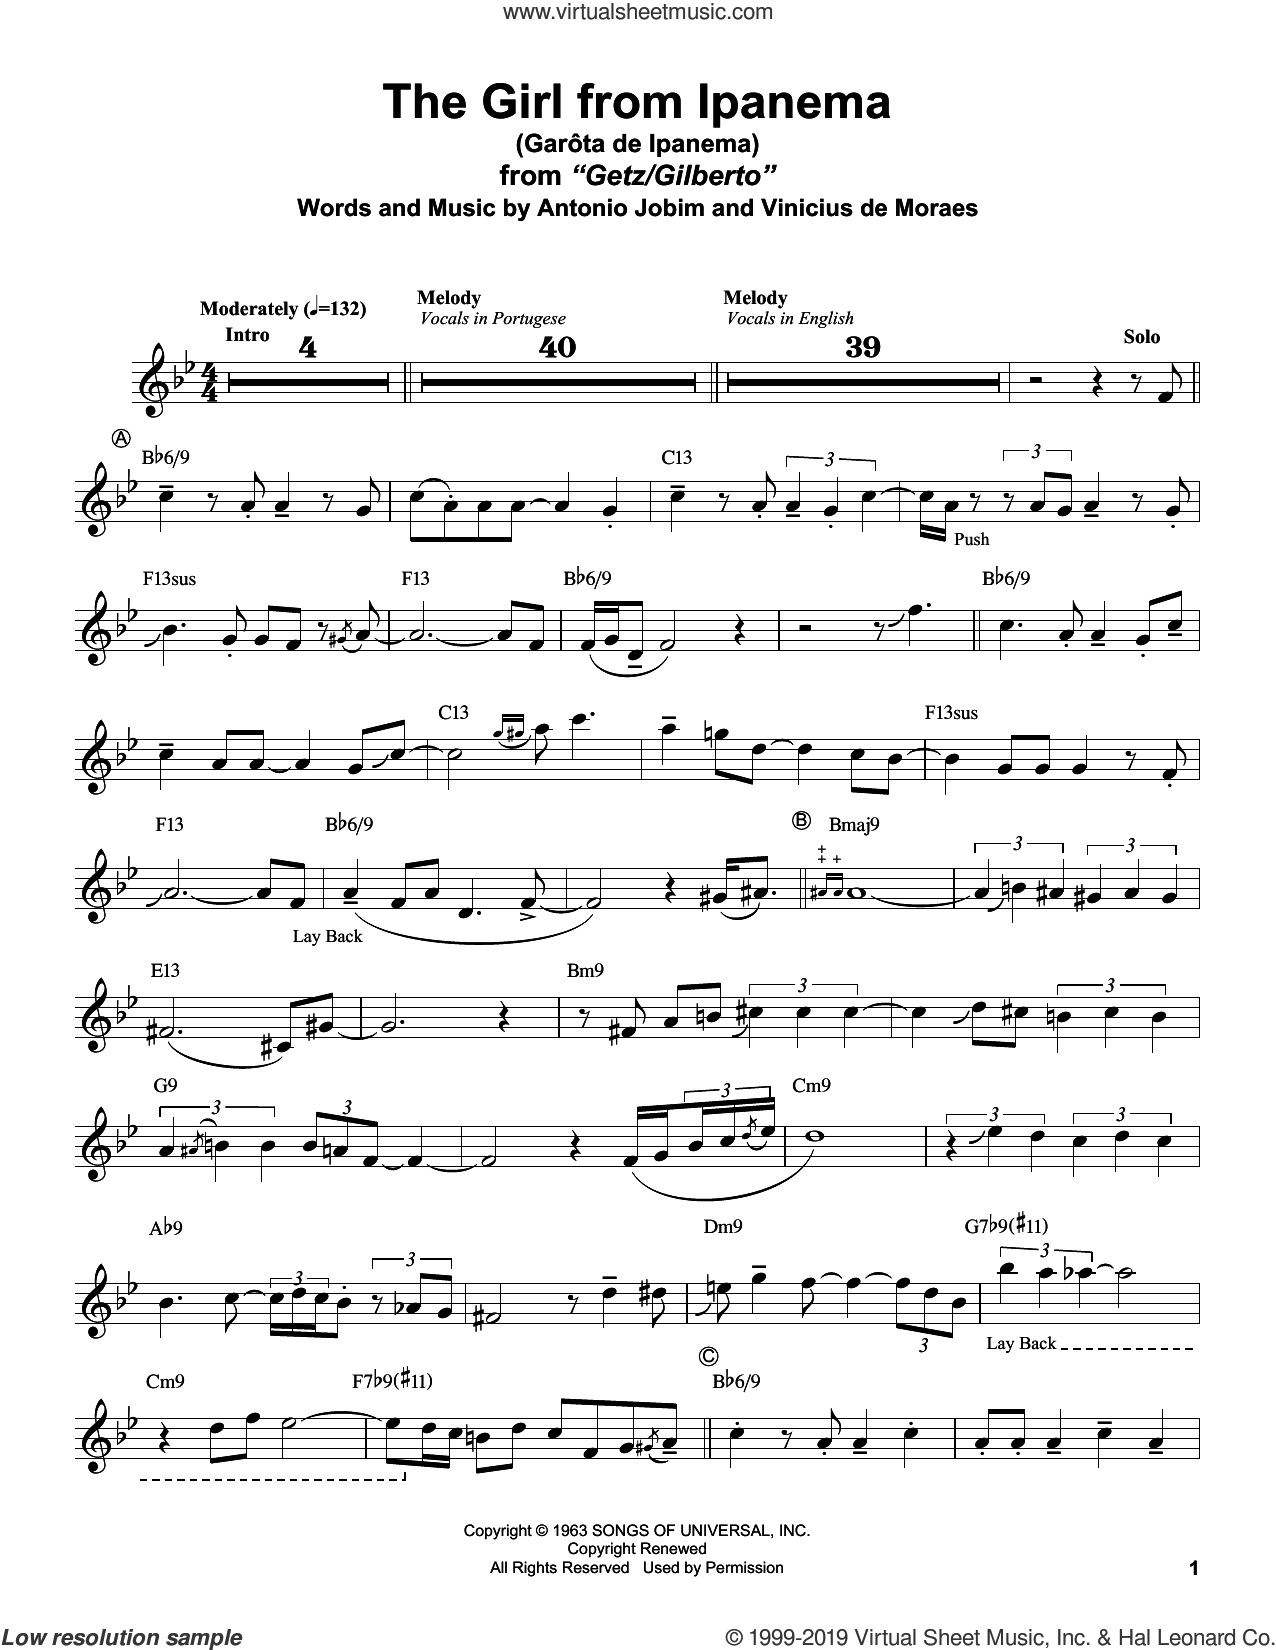 Garota De Ipanema sheet music for alto saxophone (transcription) by Stan Getz, Antonio Jobim and Vinicius de Moraes, intermediate skill level